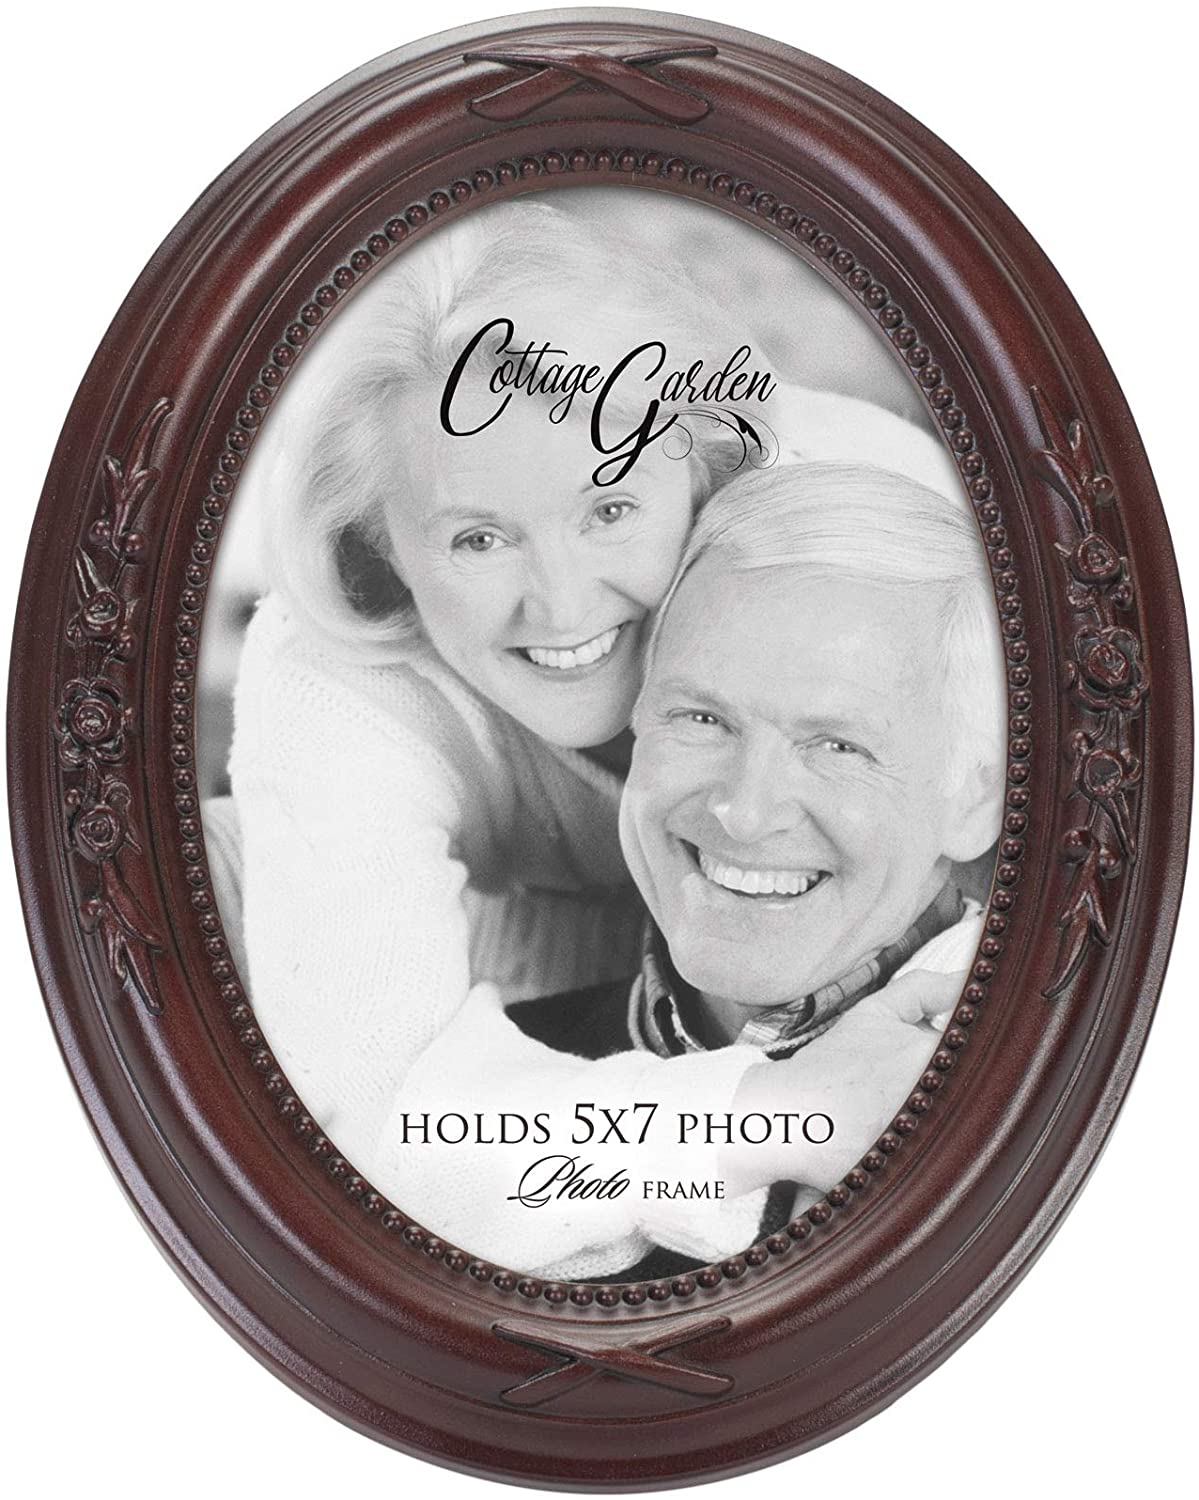 Cottage Garden Add Your Own Personal Photo Mahogany Finish Floral 5 x 7 Oval Table and Wall Photo Frame